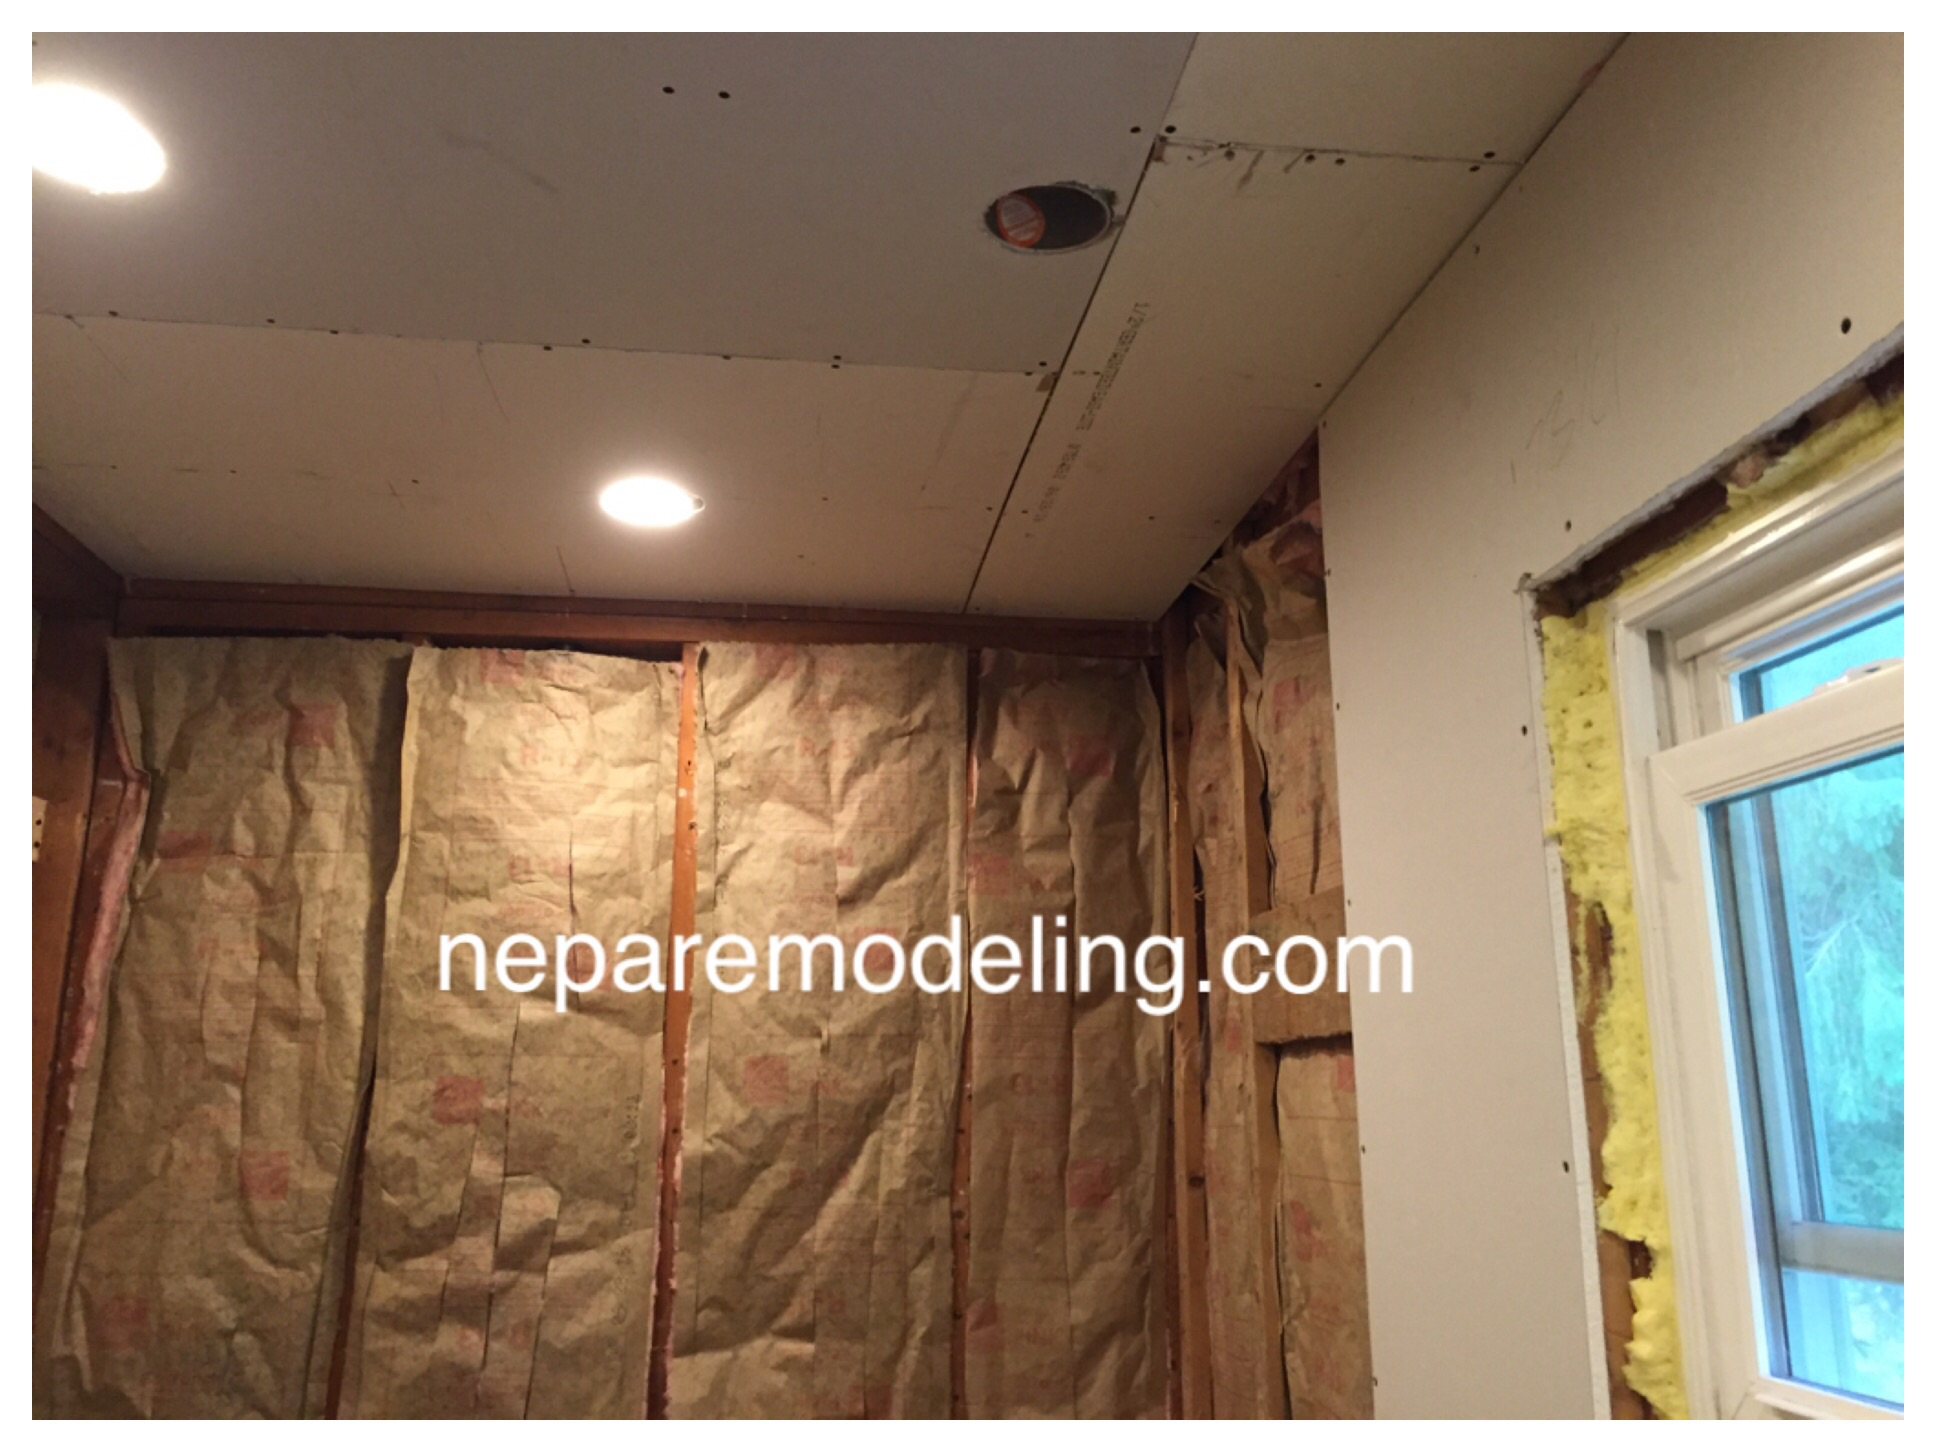 After demo, electrical, and plumbing were completed, batt insulation was added to the interior walls to reduce noise transferring to adjacent bedrooms. Drywall was installed to replace the existing plaster wall tile.